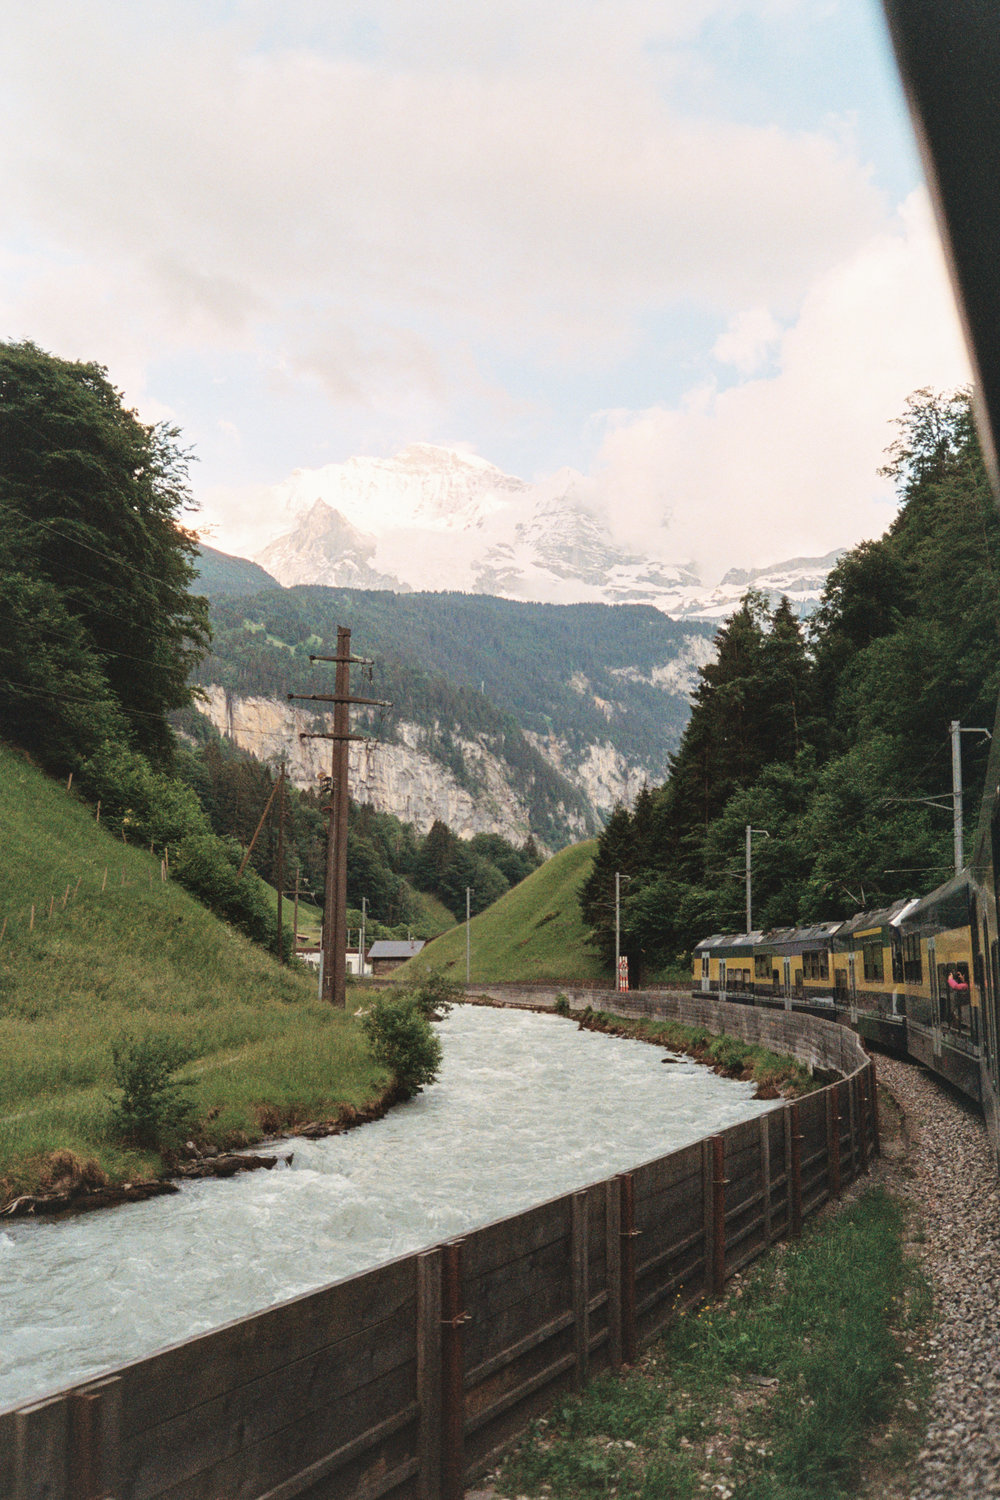 Train from Interlaken to Lauterbrunnen